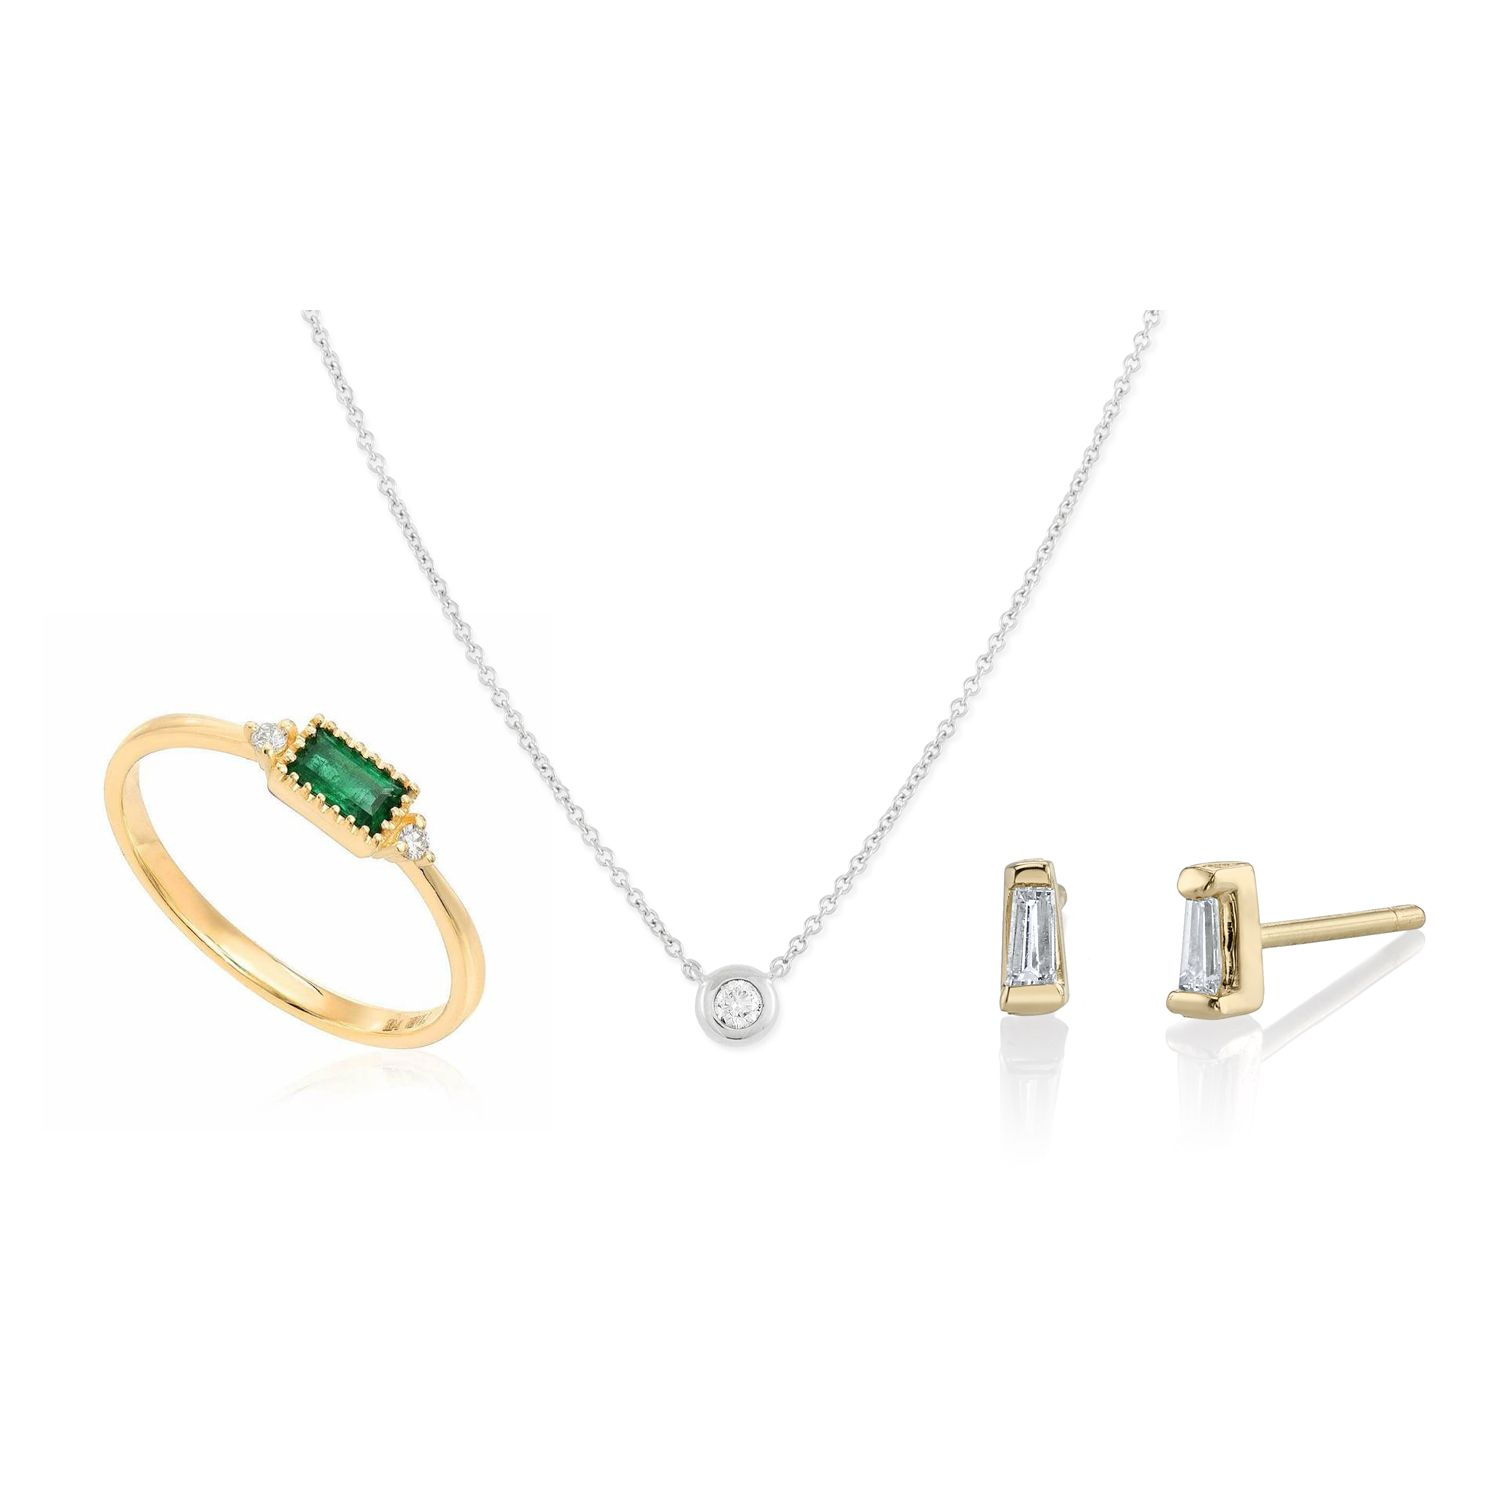 10 Pieces Of Jewelry That Are The Perfect Graduation Gift